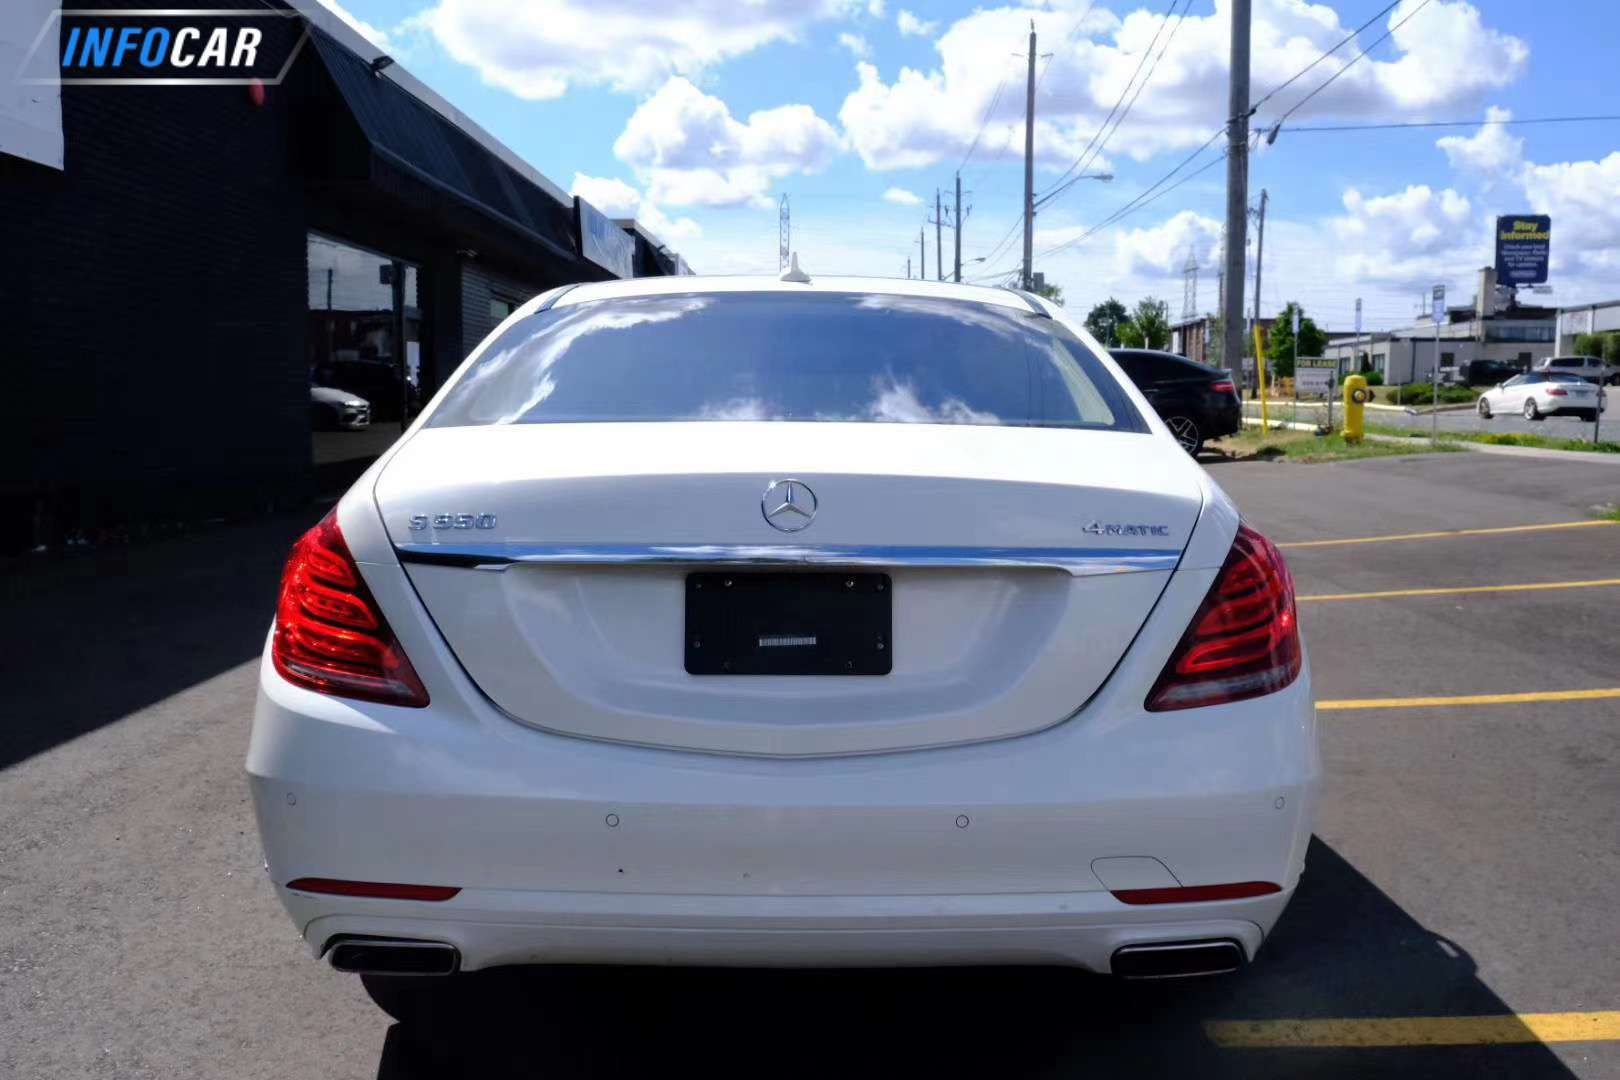 2017 Mercedes-Benz S-Class S550 - INFOCAR - Toronto's Most Comprehensive New and Used Auto Trading Platform